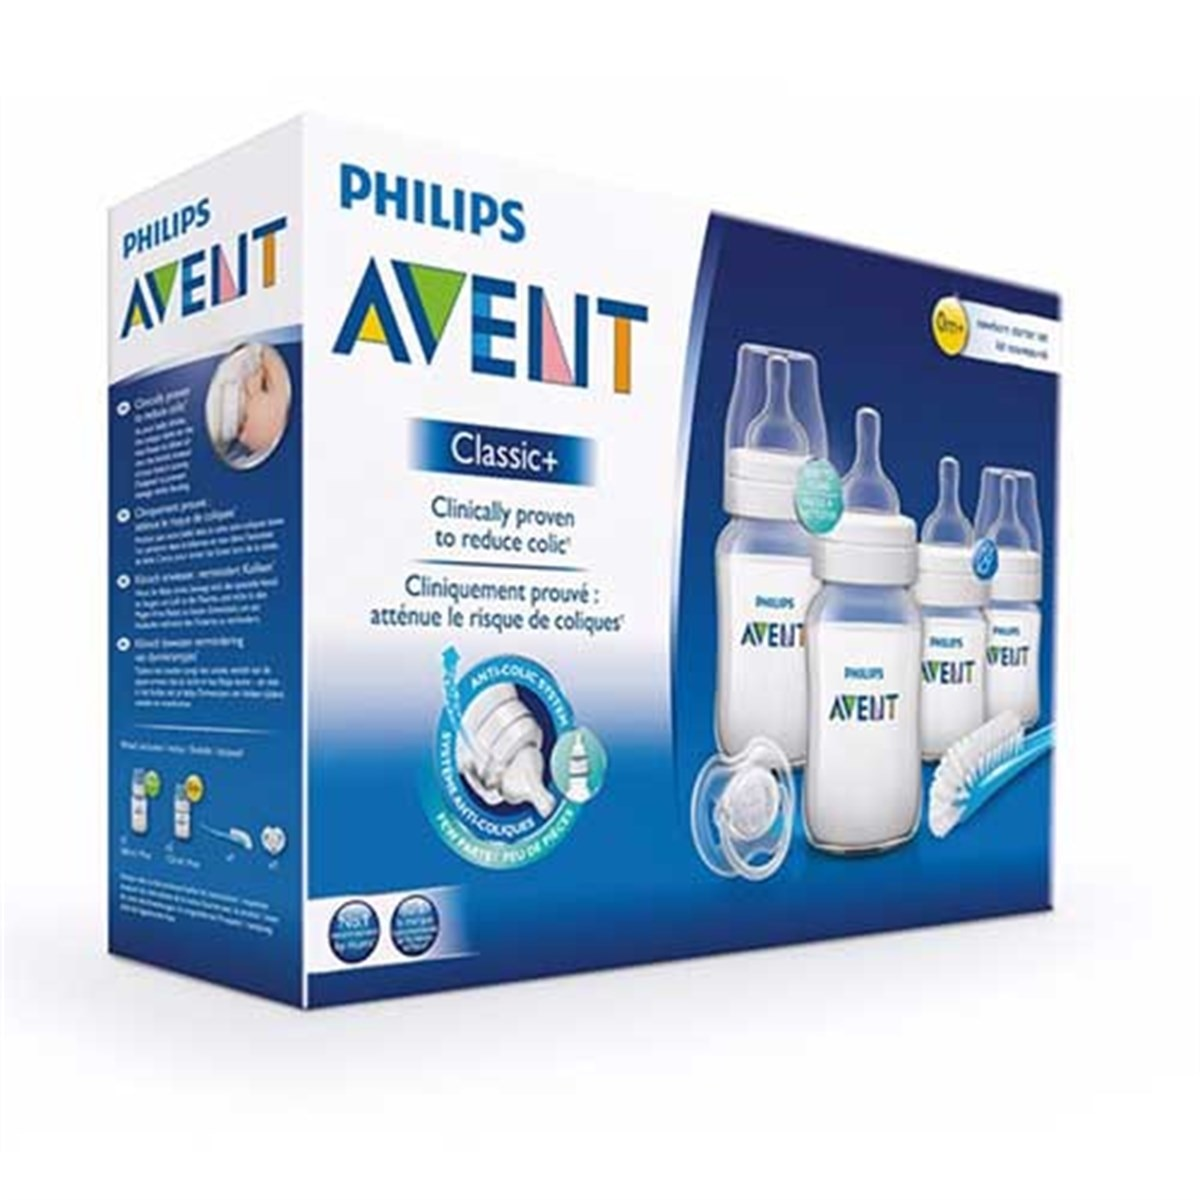 Original Philips Avent Natural newborn feeding bottle set BPA-free baby bottle varieties healthy product fast shipping 8 options